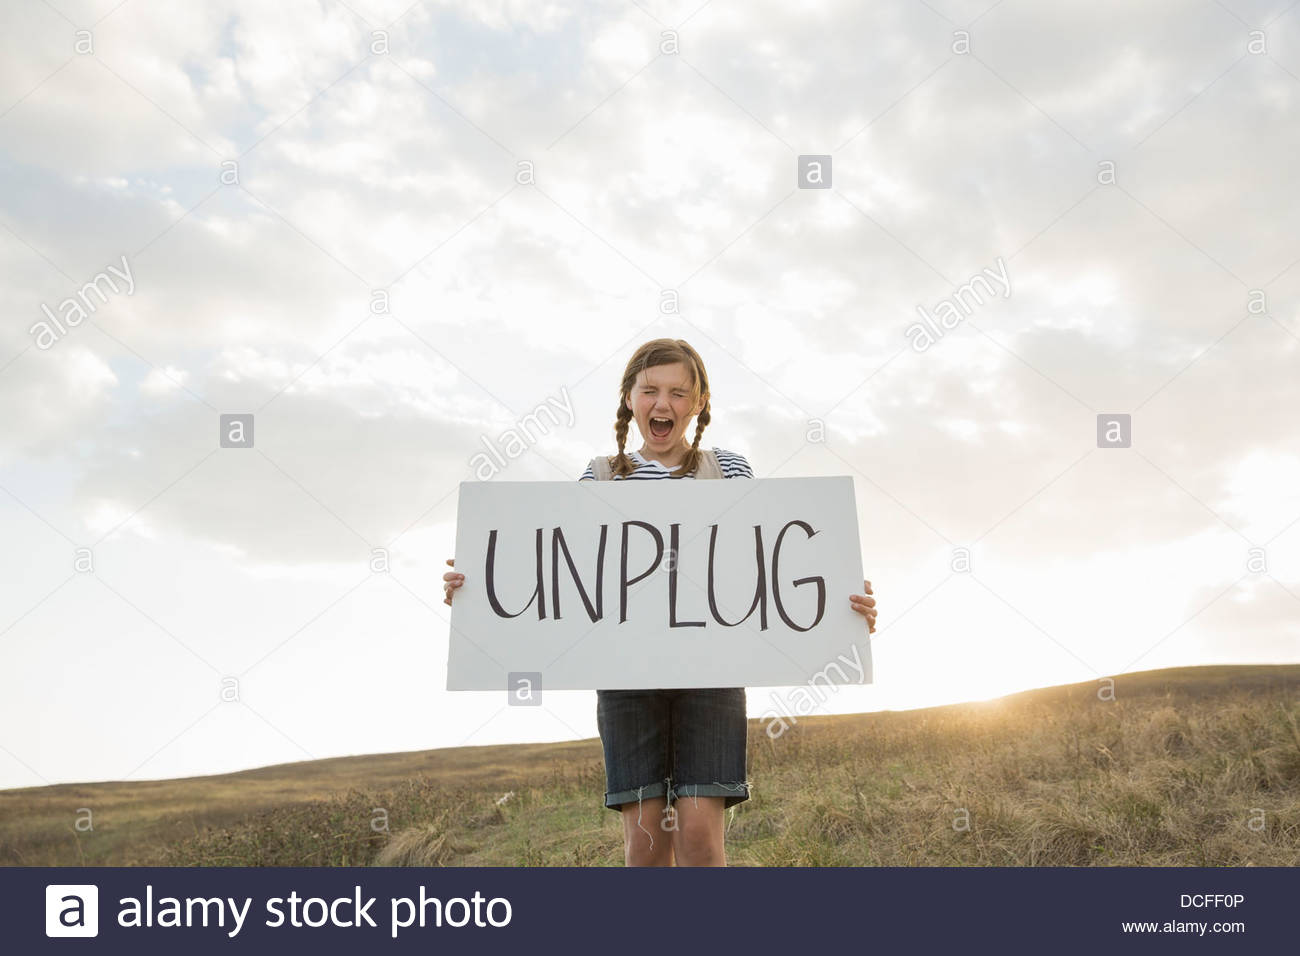 Girl making a statement with unplug sign on hillside - Stock Image